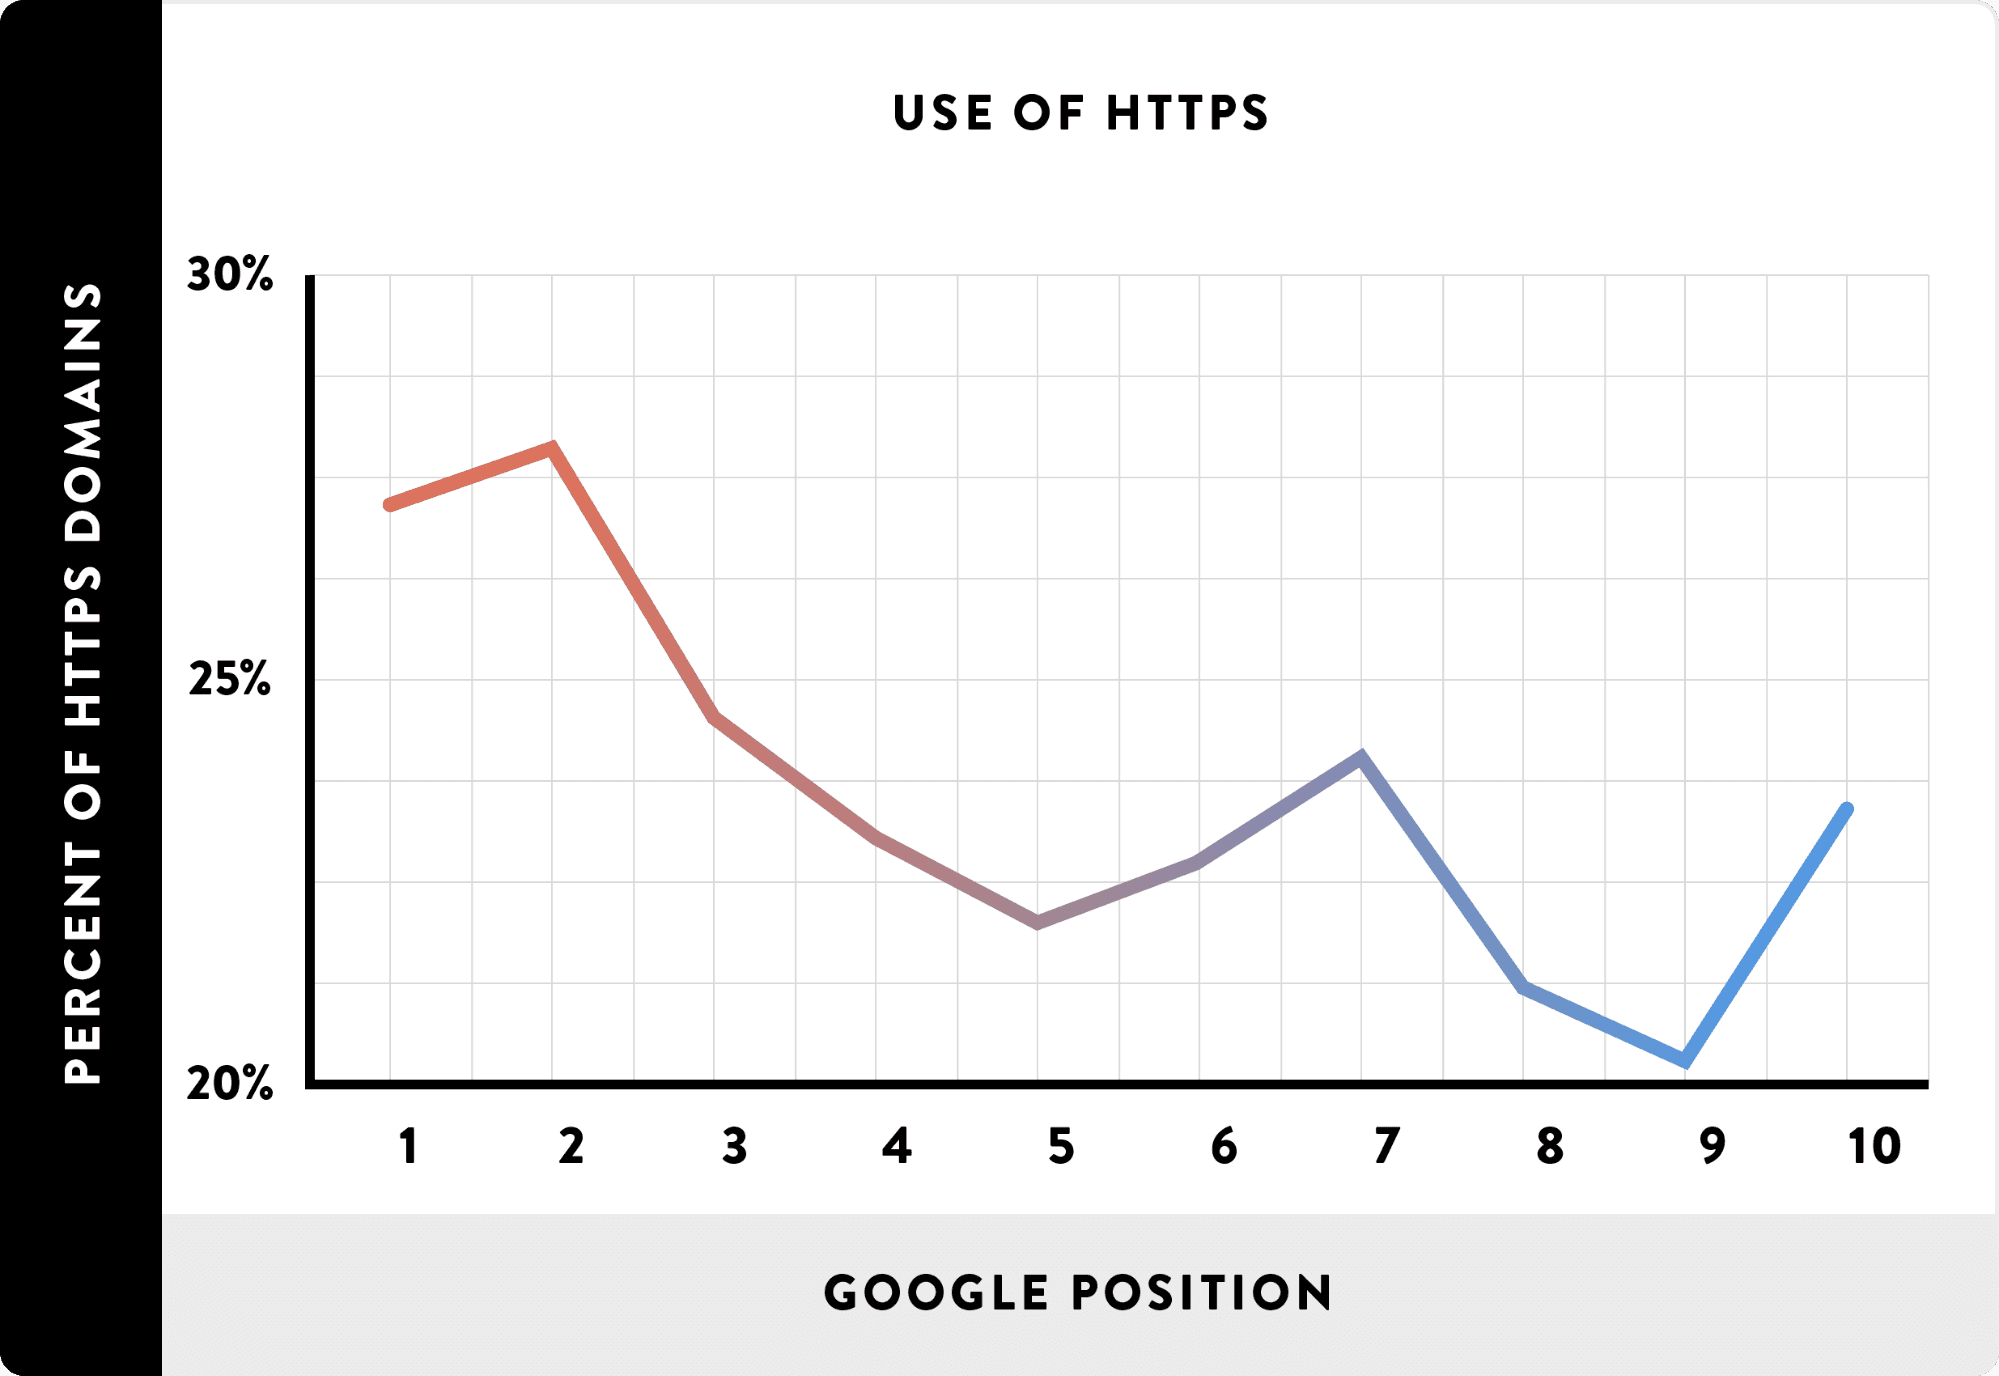 HTTPS website have higher search rankings